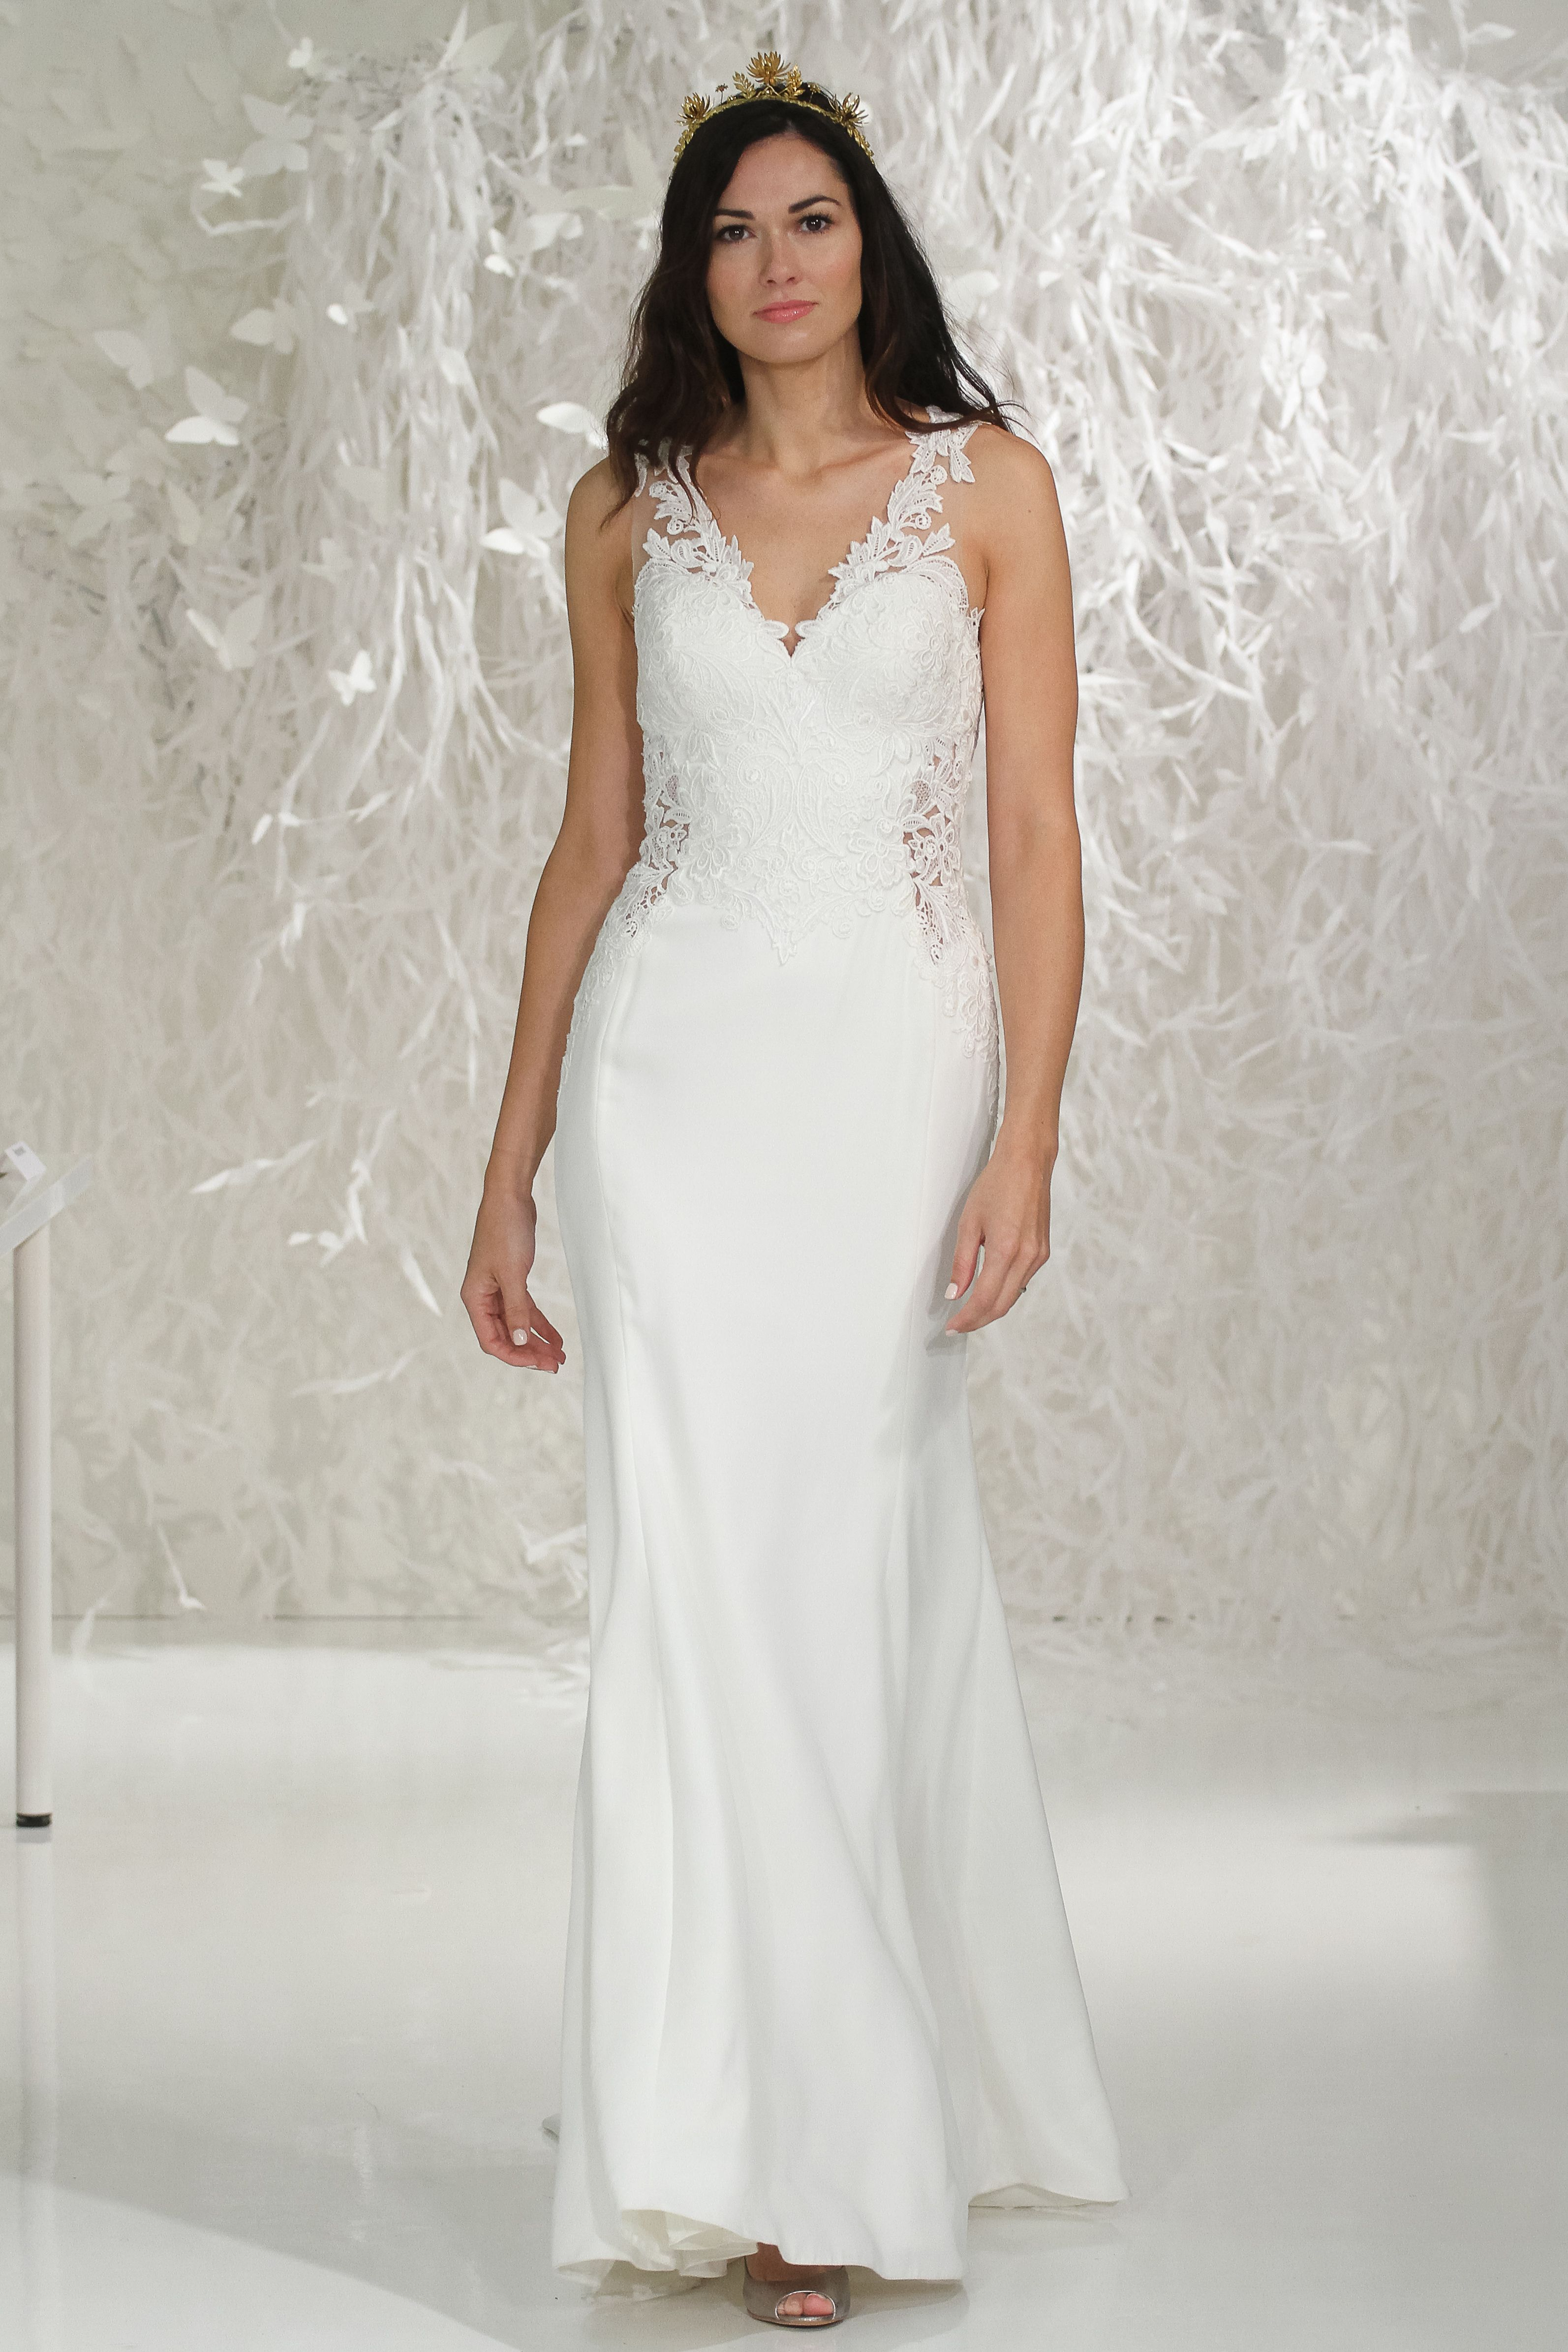 willowbywatters Caracas   Bridal Collections   Pinterest ...